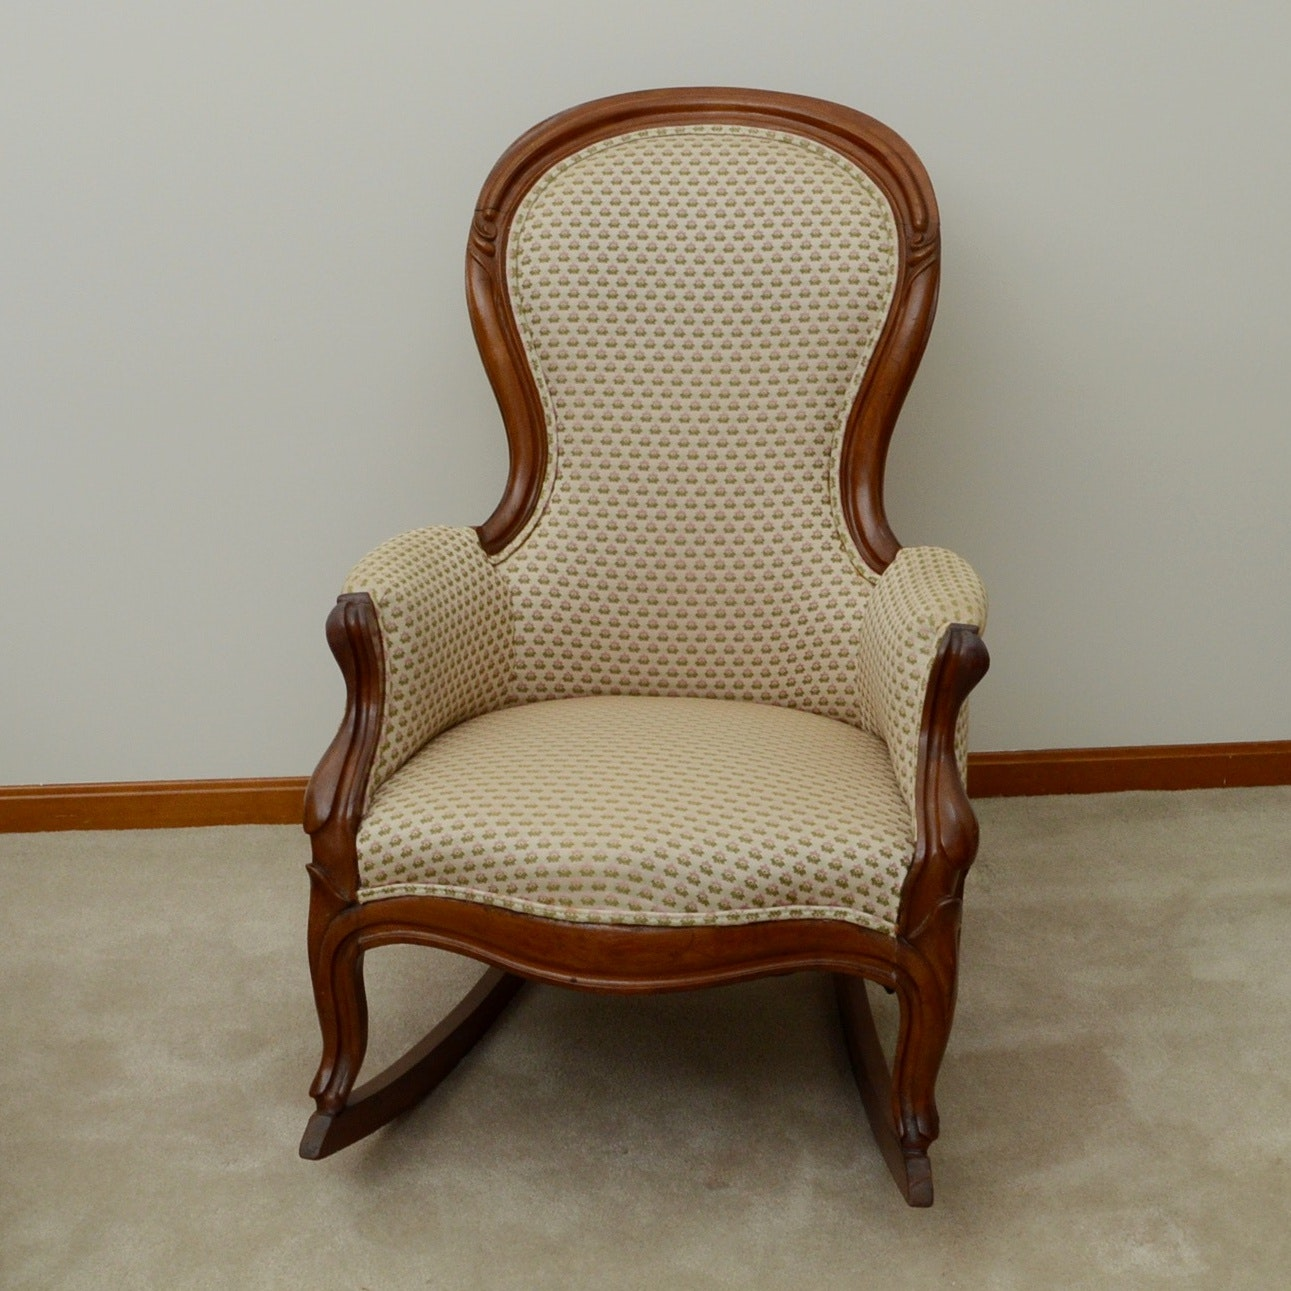 Antique Rococo Style Rocking Chair